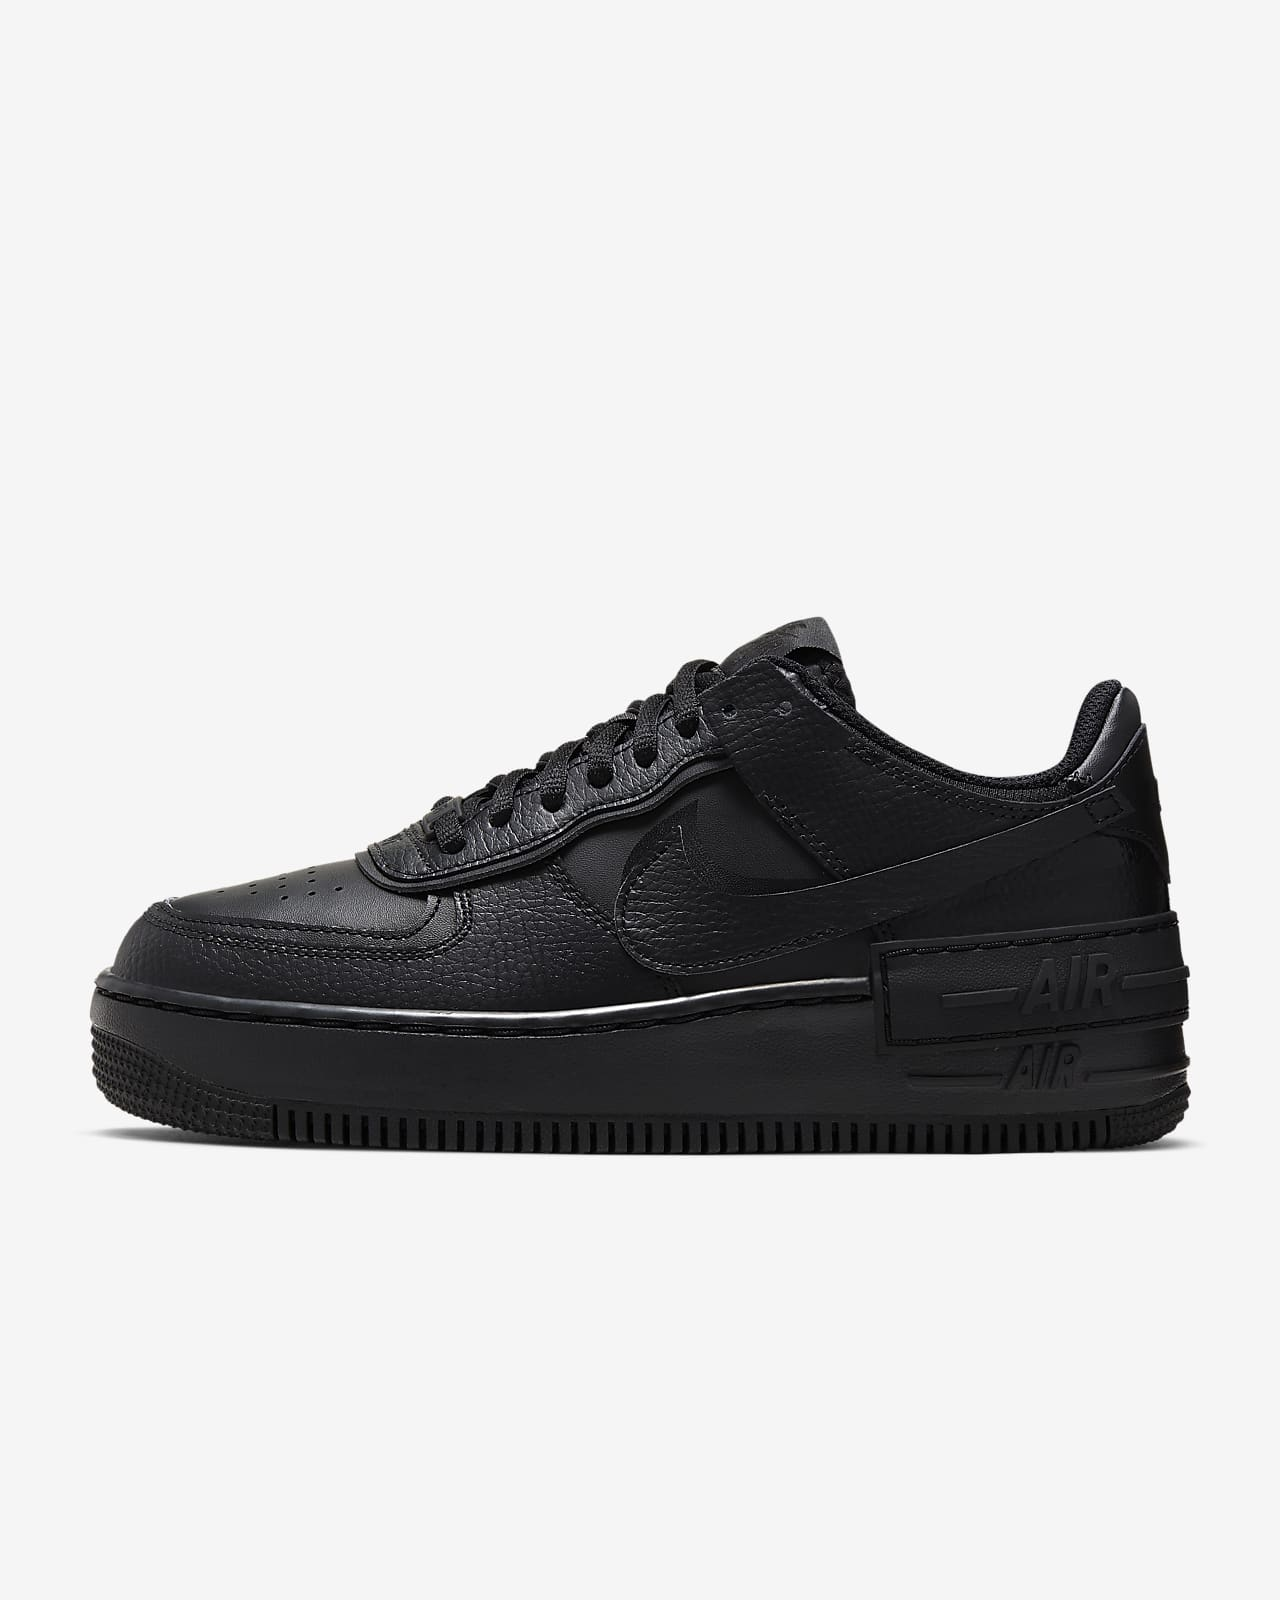 Nike Air Force 1 Shadow Women S Shoe Nike Eg In this video i review a brand new model from nike, the nike air force 1 shadow. nike air force 1 shadow women s shoe